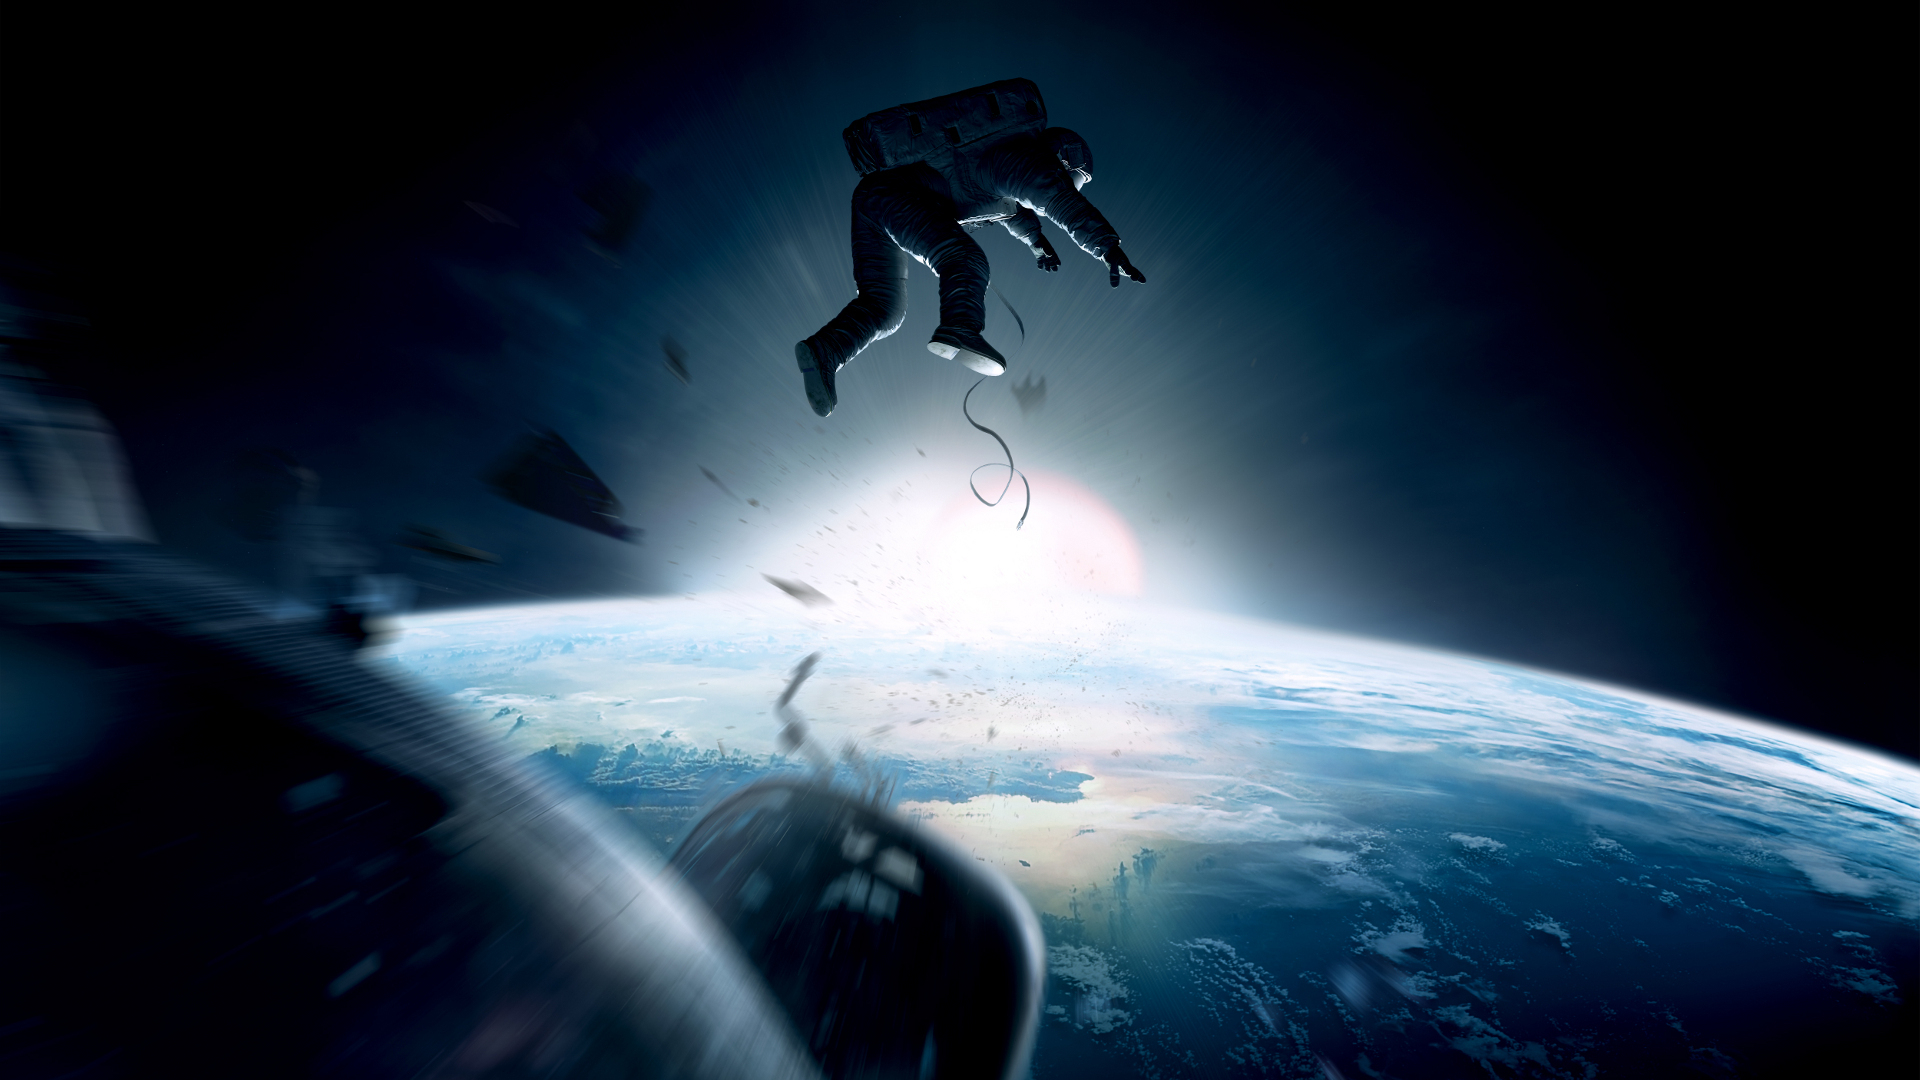 GRAVITY movie sci fi space j wallpaper background 1920x1080